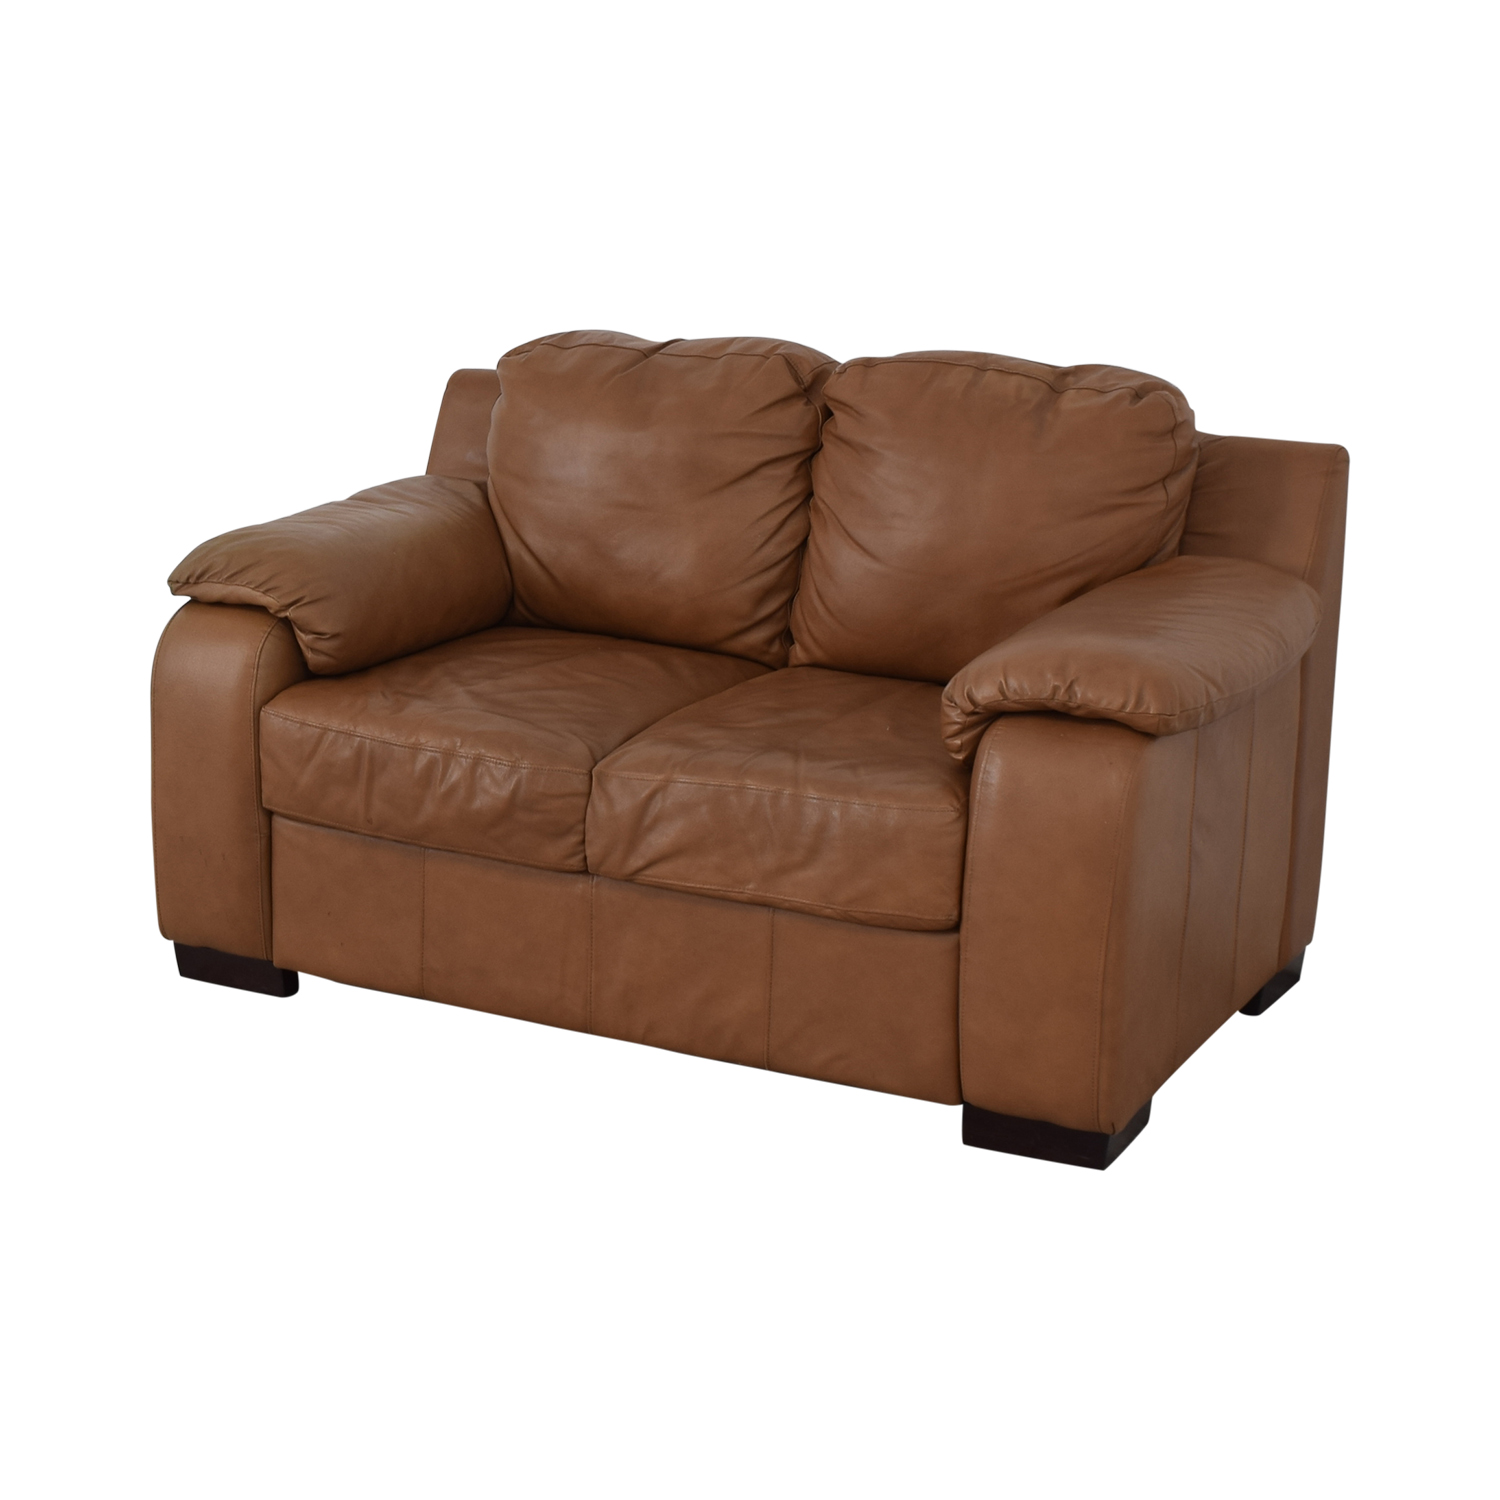 Jennifer Furniture Jennifer Furniture Cognac Two-Cushion Loveseat used